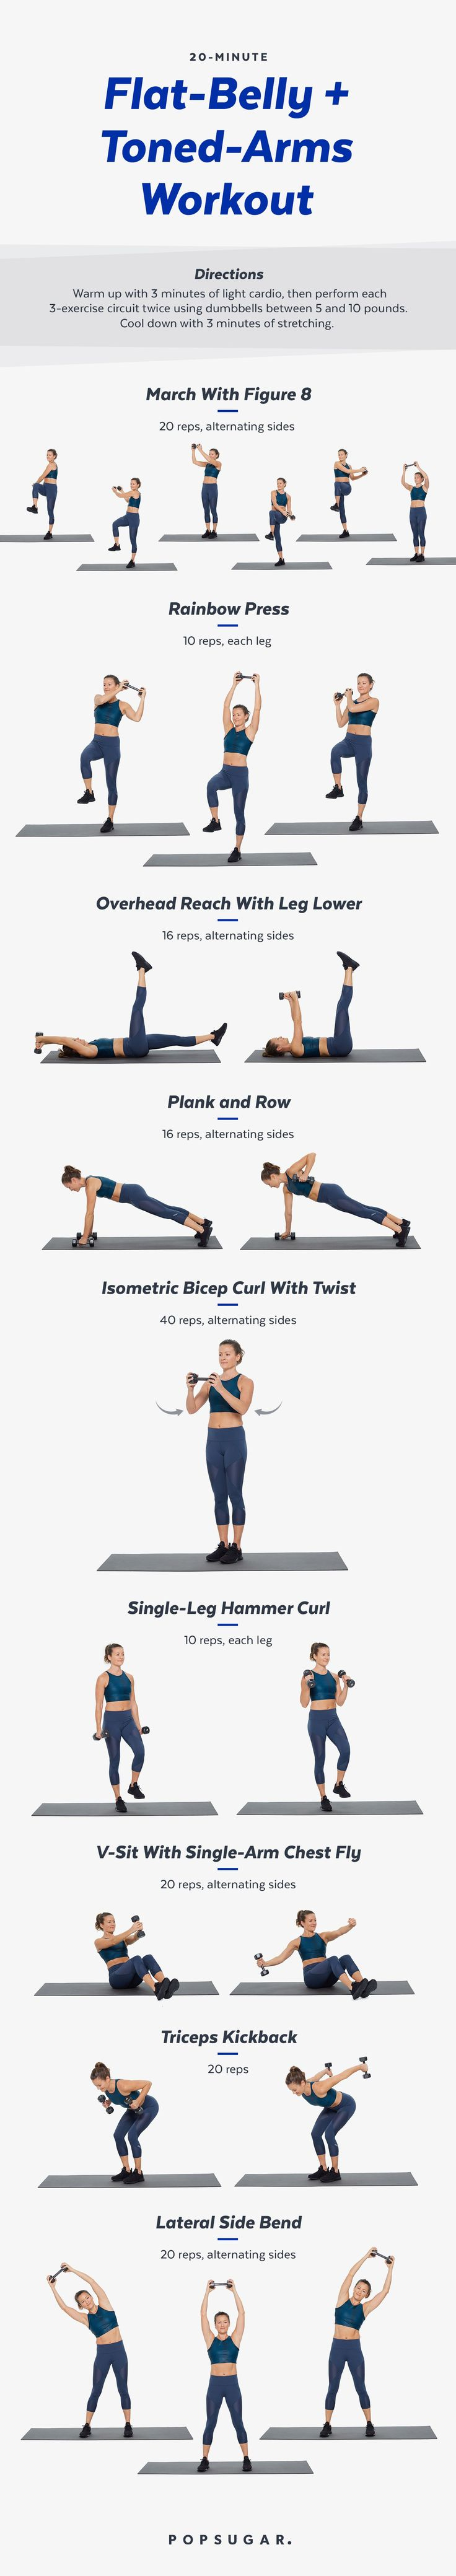 20-Minute Arms and Abs Workout With Weights | POPSUGAR Fitness